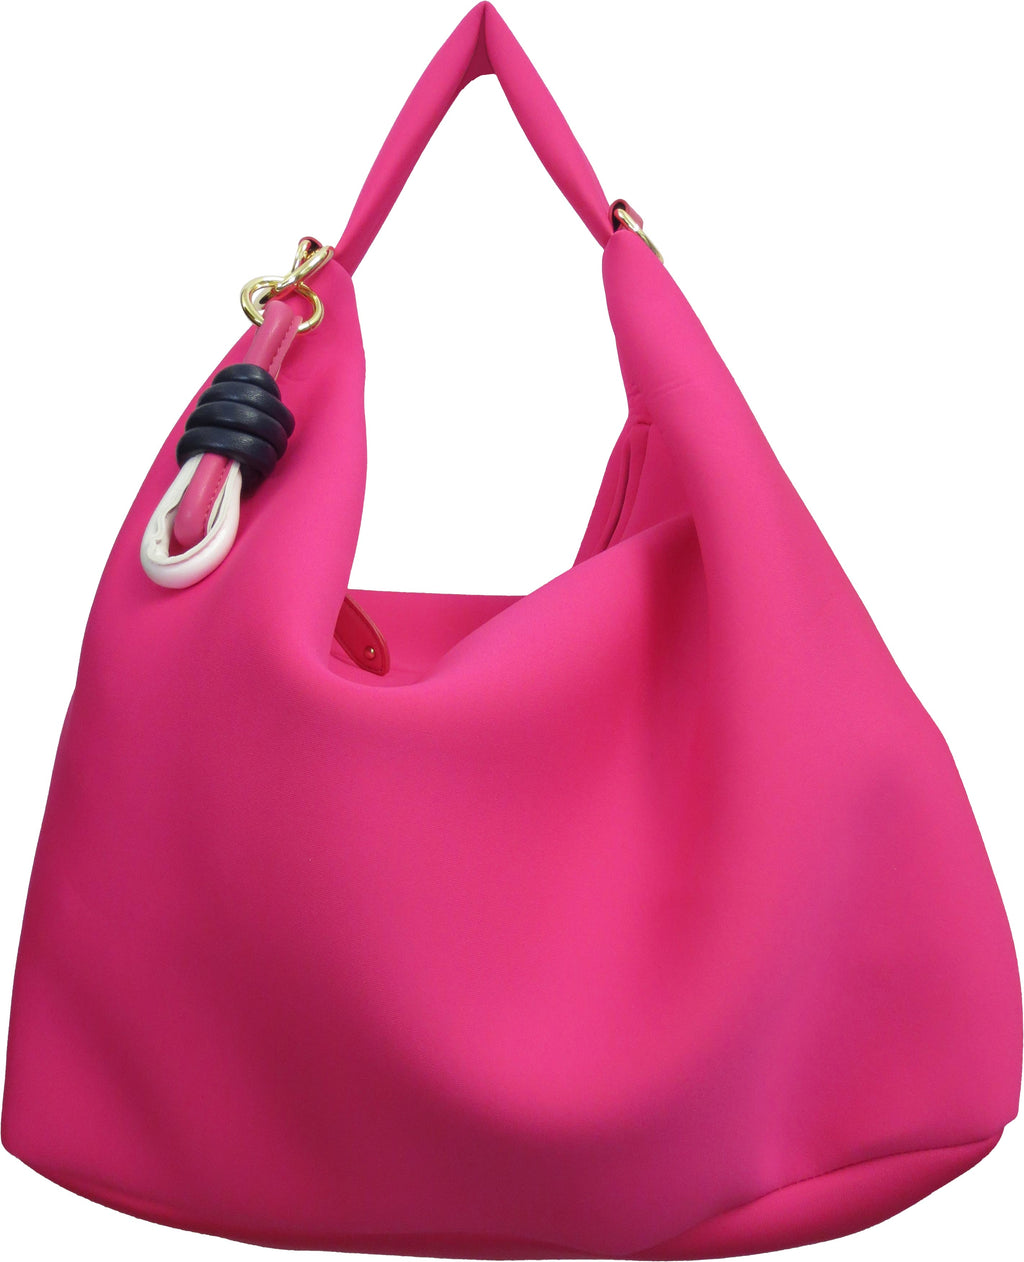 SRB25308 -  Neoprene Hobo in Pink by Sondra  Roberts. Pop of color in a neoprene, easy care hobo shoulder bag. Zipper closure. Imported